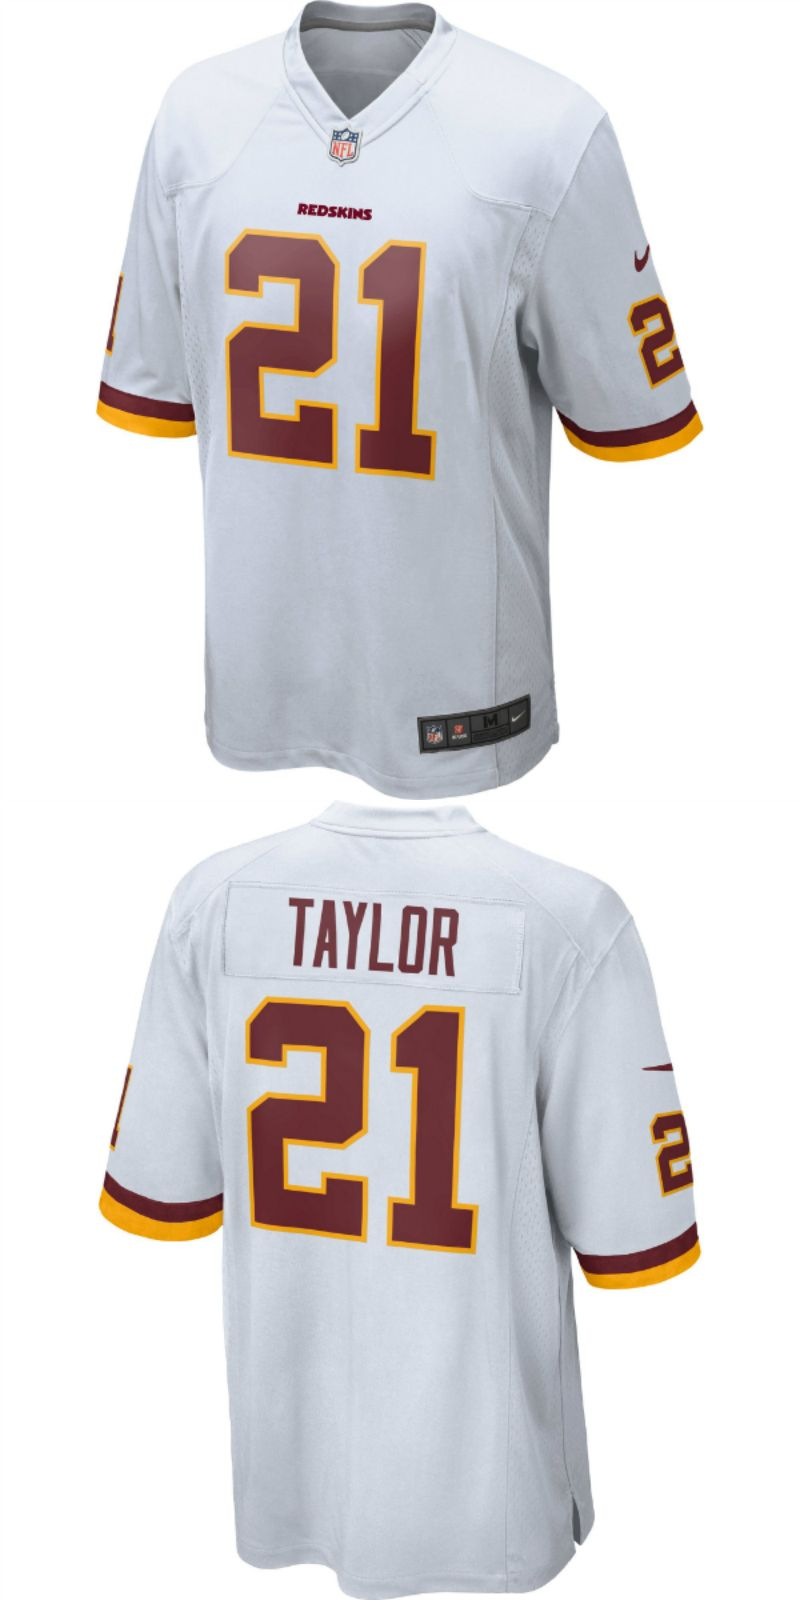 detailed look d5641 1339a UP TO 70% OFF. Sean Taylor Washington Redskins Nike Retired ...